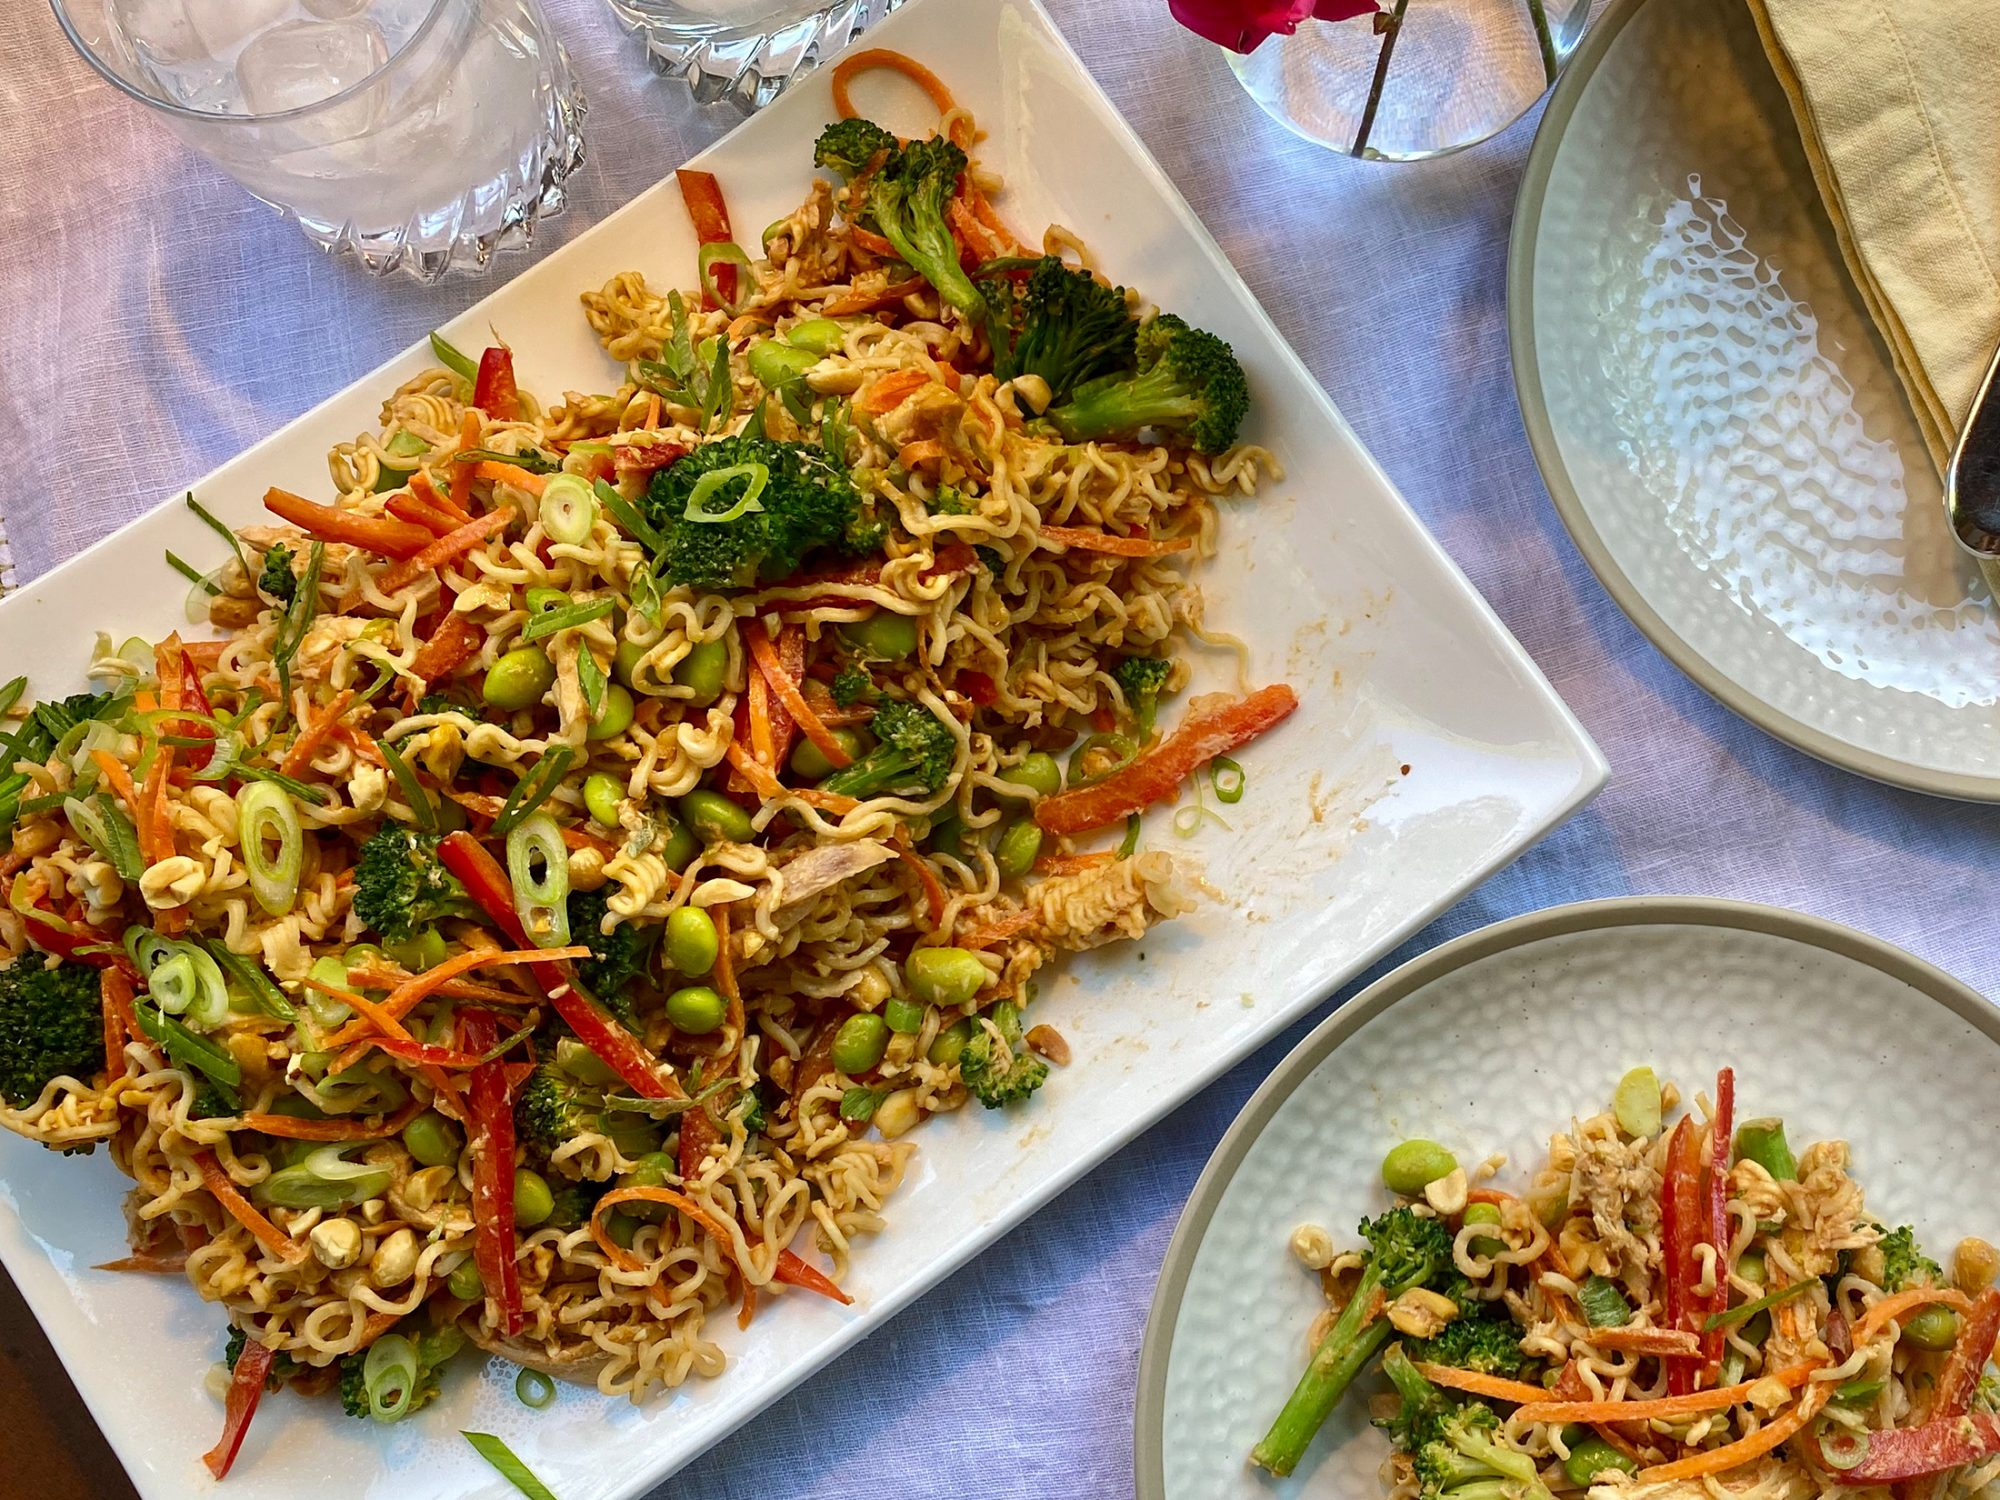 Crunchy Ramen Chicken Salad with Spicy Peanut Dressing image